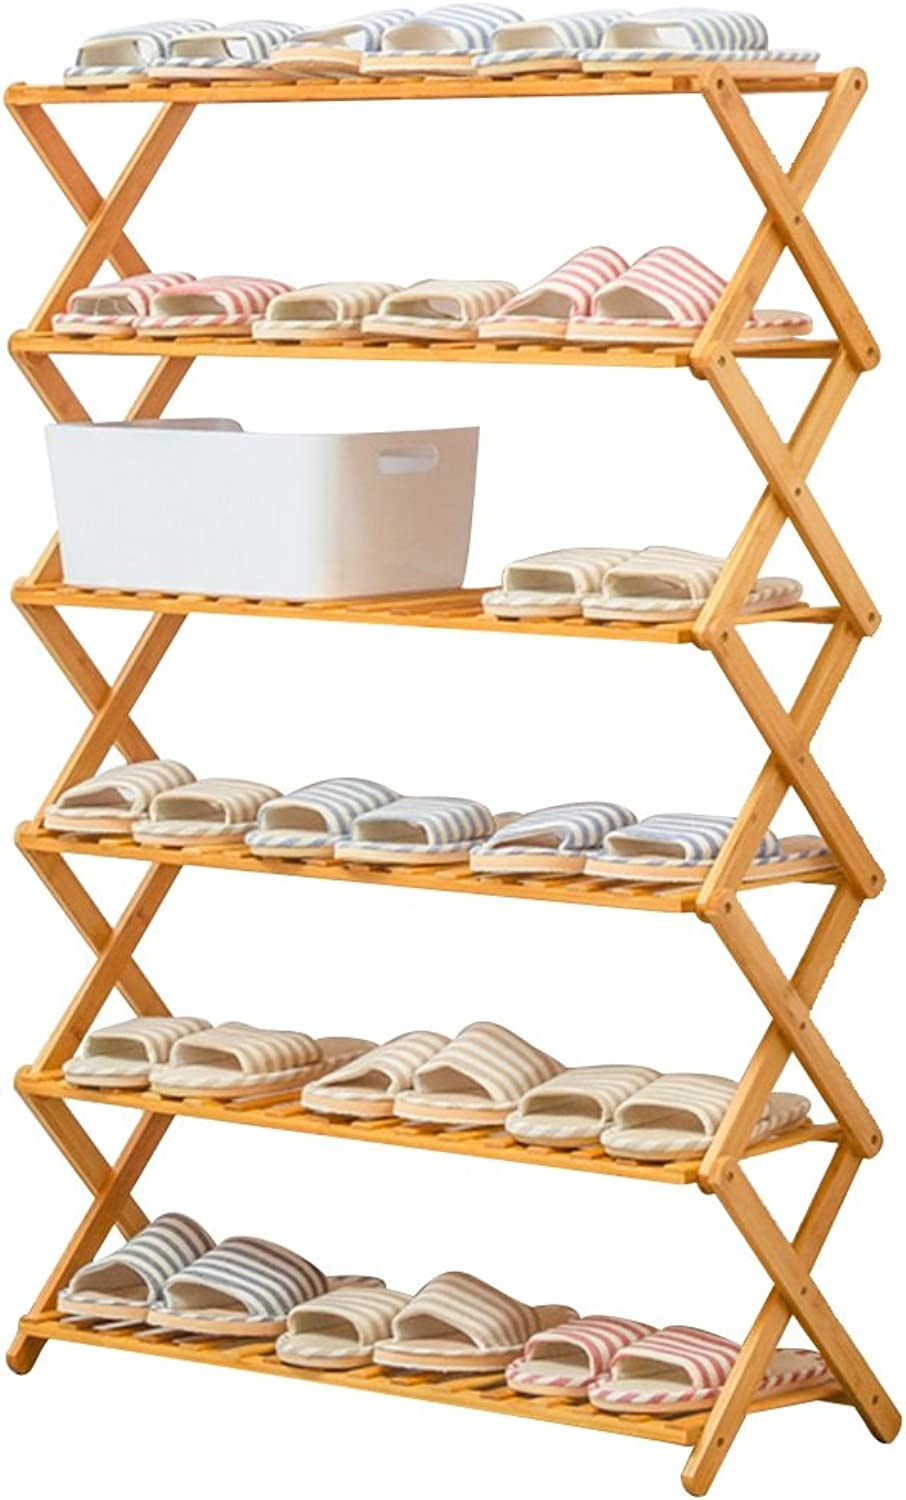 Bamboo, Bamboo, 6 Layers, Hard and Firm, Corrosion Resistant, High Temperature Resistant, Not Easy to Deform, Multi-Layer Simple Dust Proof Storage Rack. (Size   60  25  116cm)